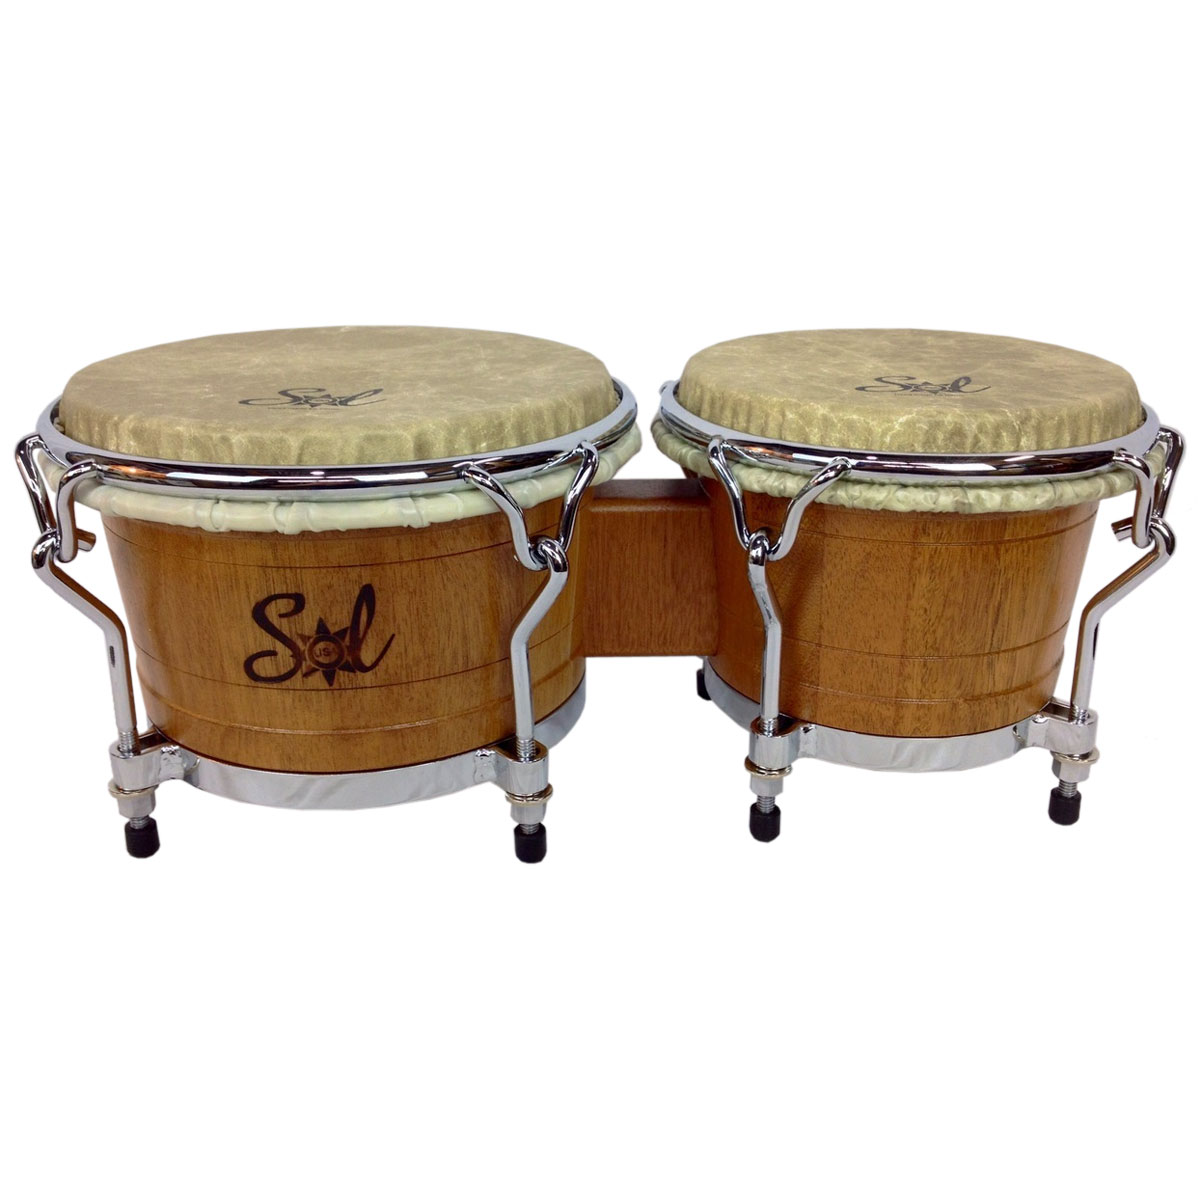 "Sol Percussion Limited Edition 7"" & 8.5"" USA Pro Mahogany Bongos"